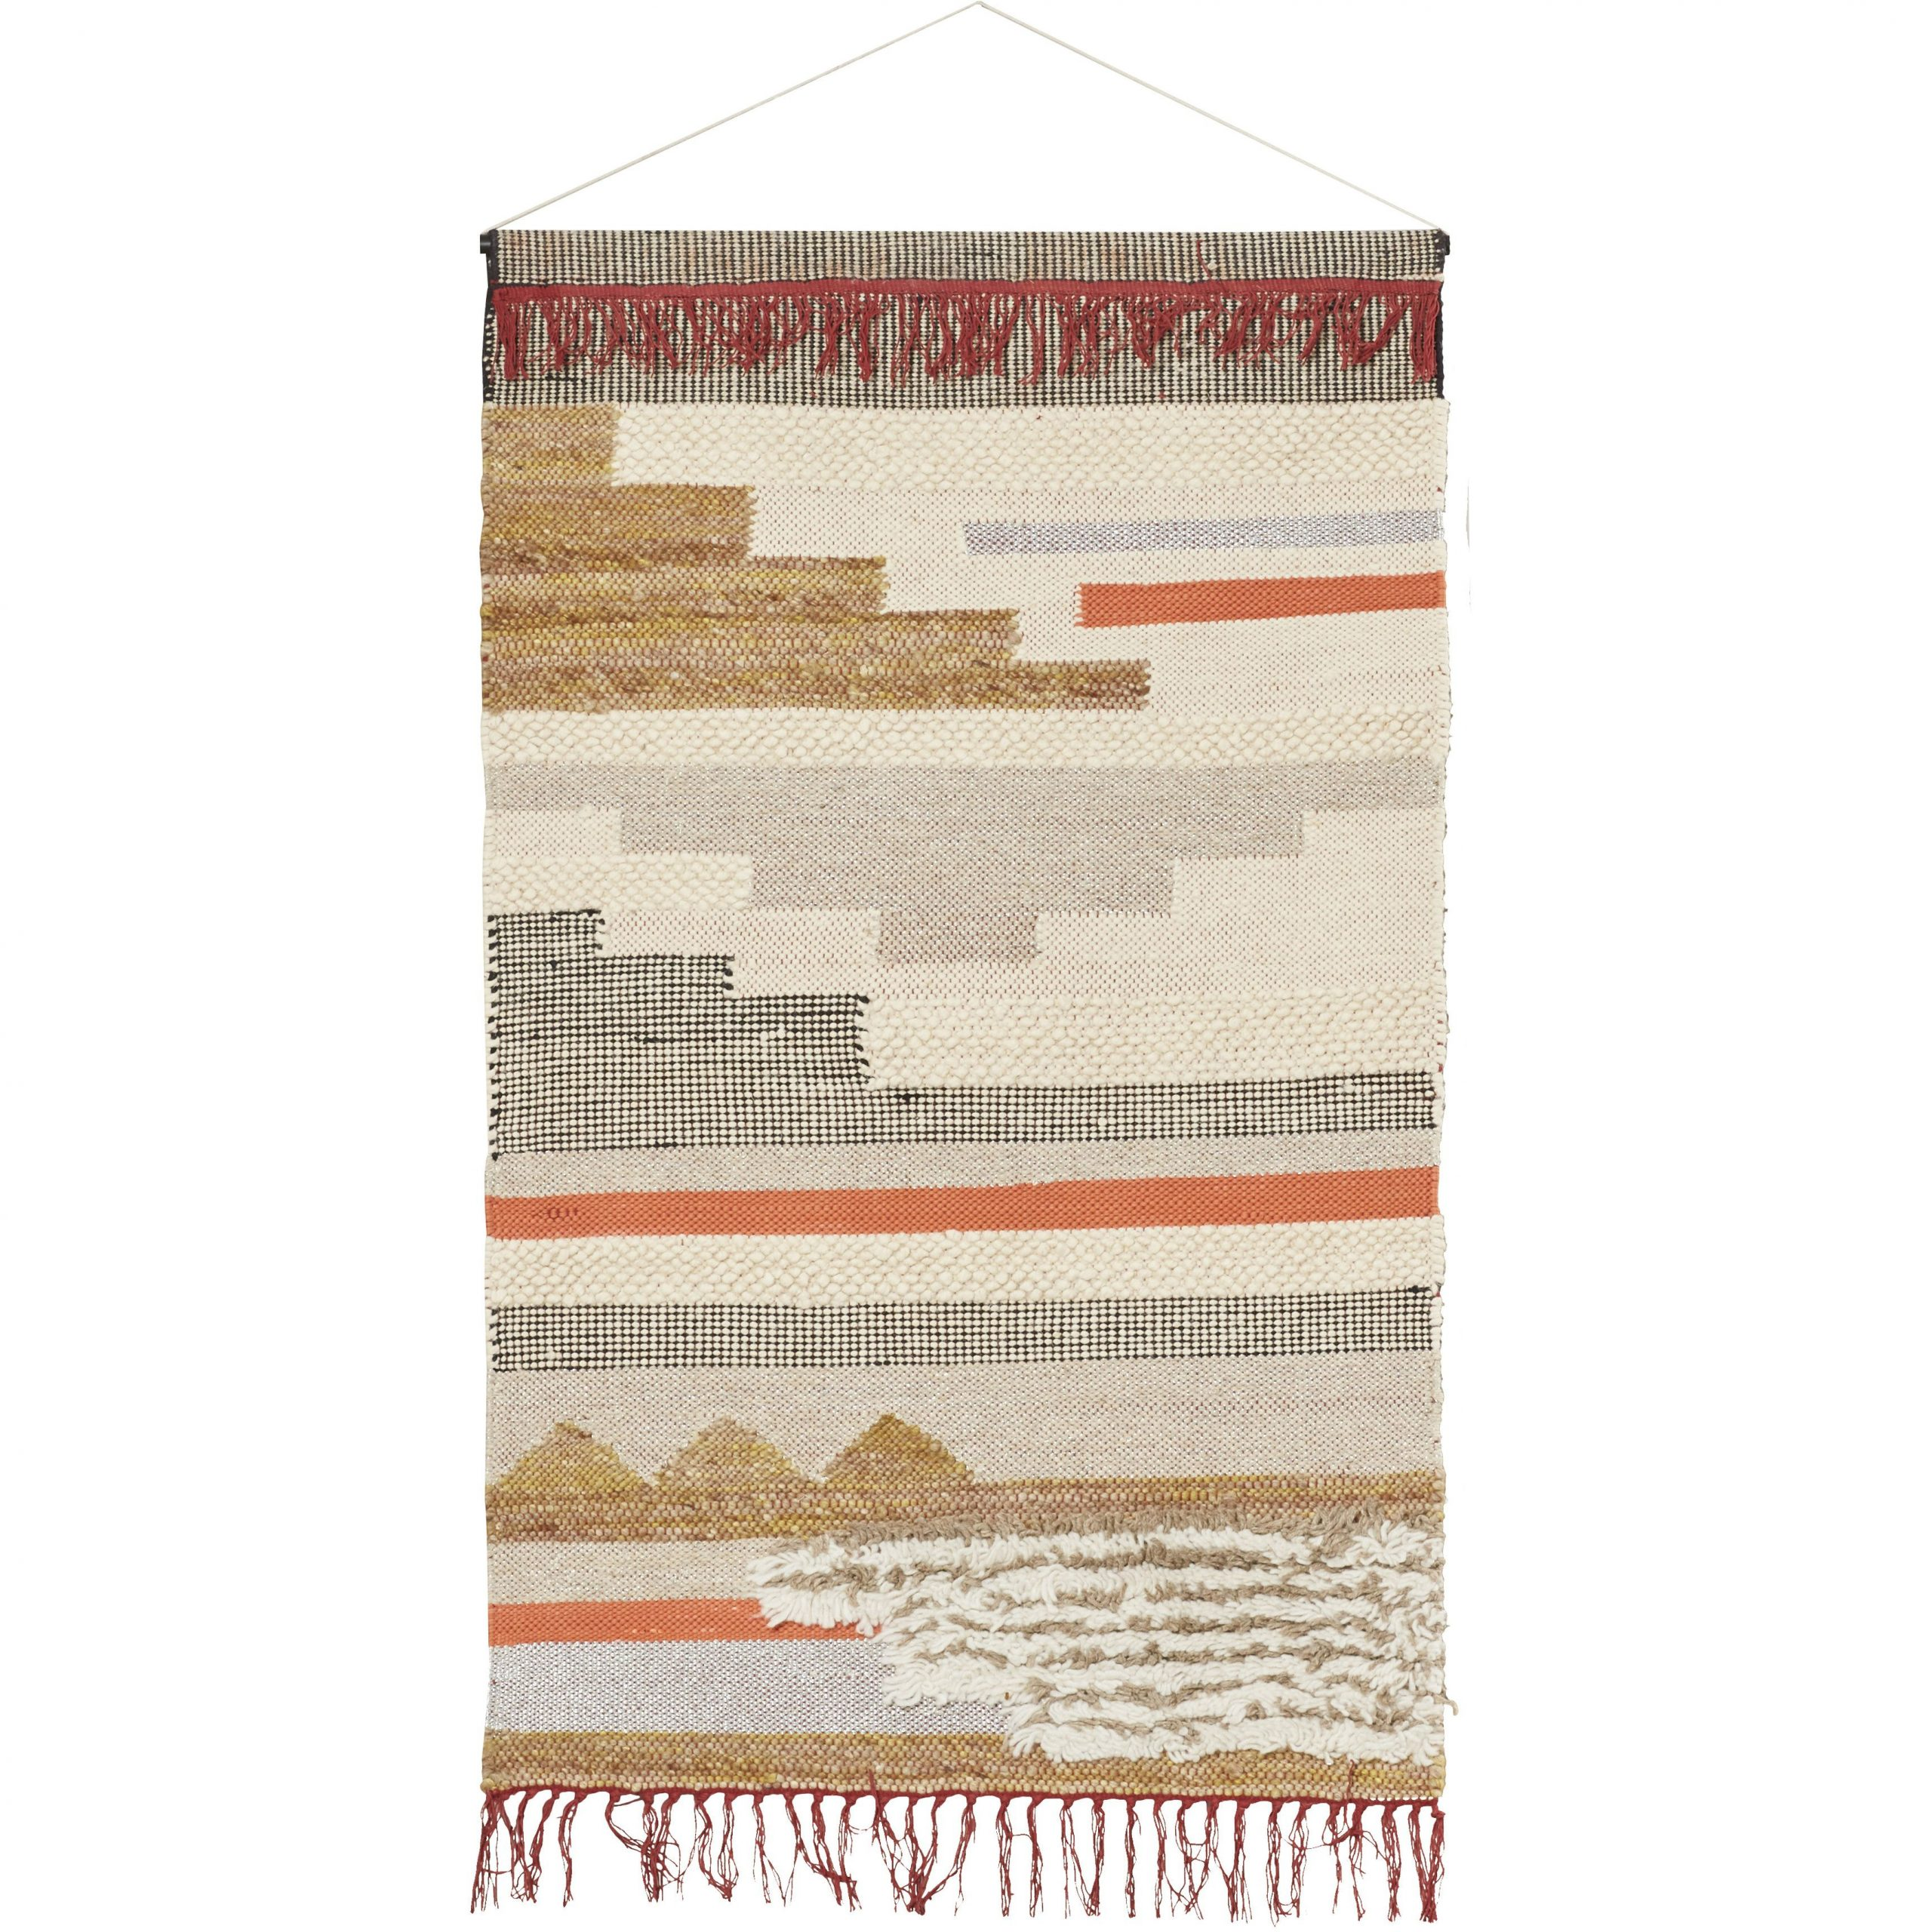 Blended Fabric Wall Hanging With Hanging Accessories Inside Latest Blended Fabric In His Tapestries And Wall Hangings (View 2 of 20)